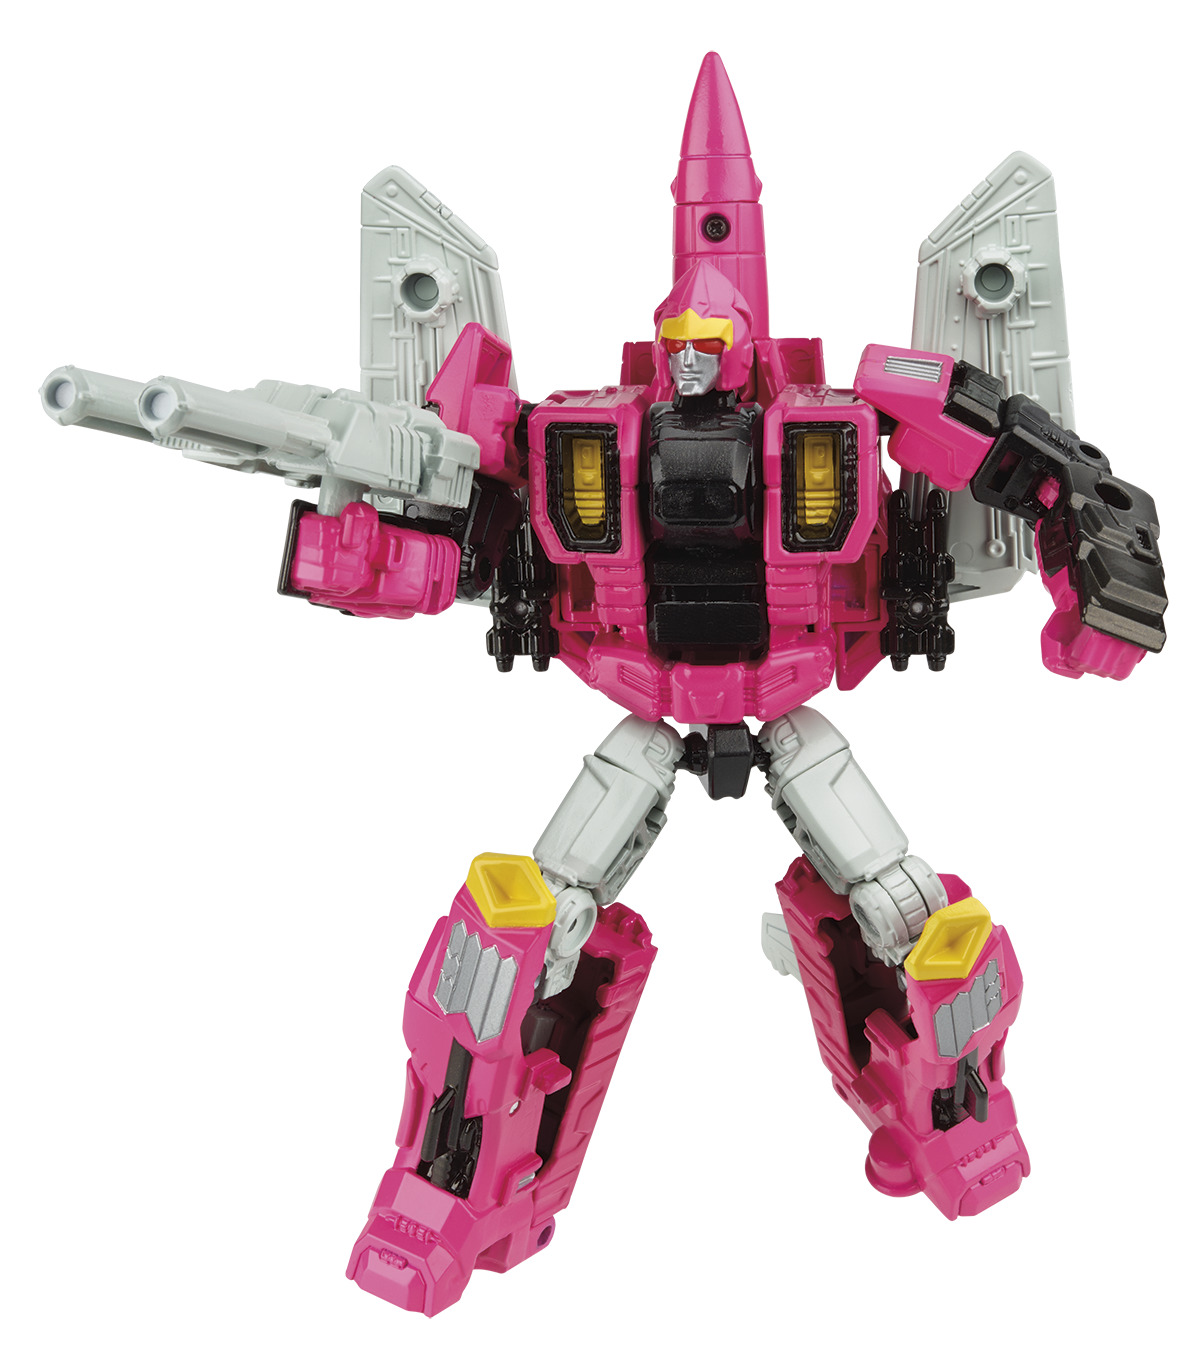 Transformers News: Official Images for Transformers Generations Liokaiser #HASBROSDCC